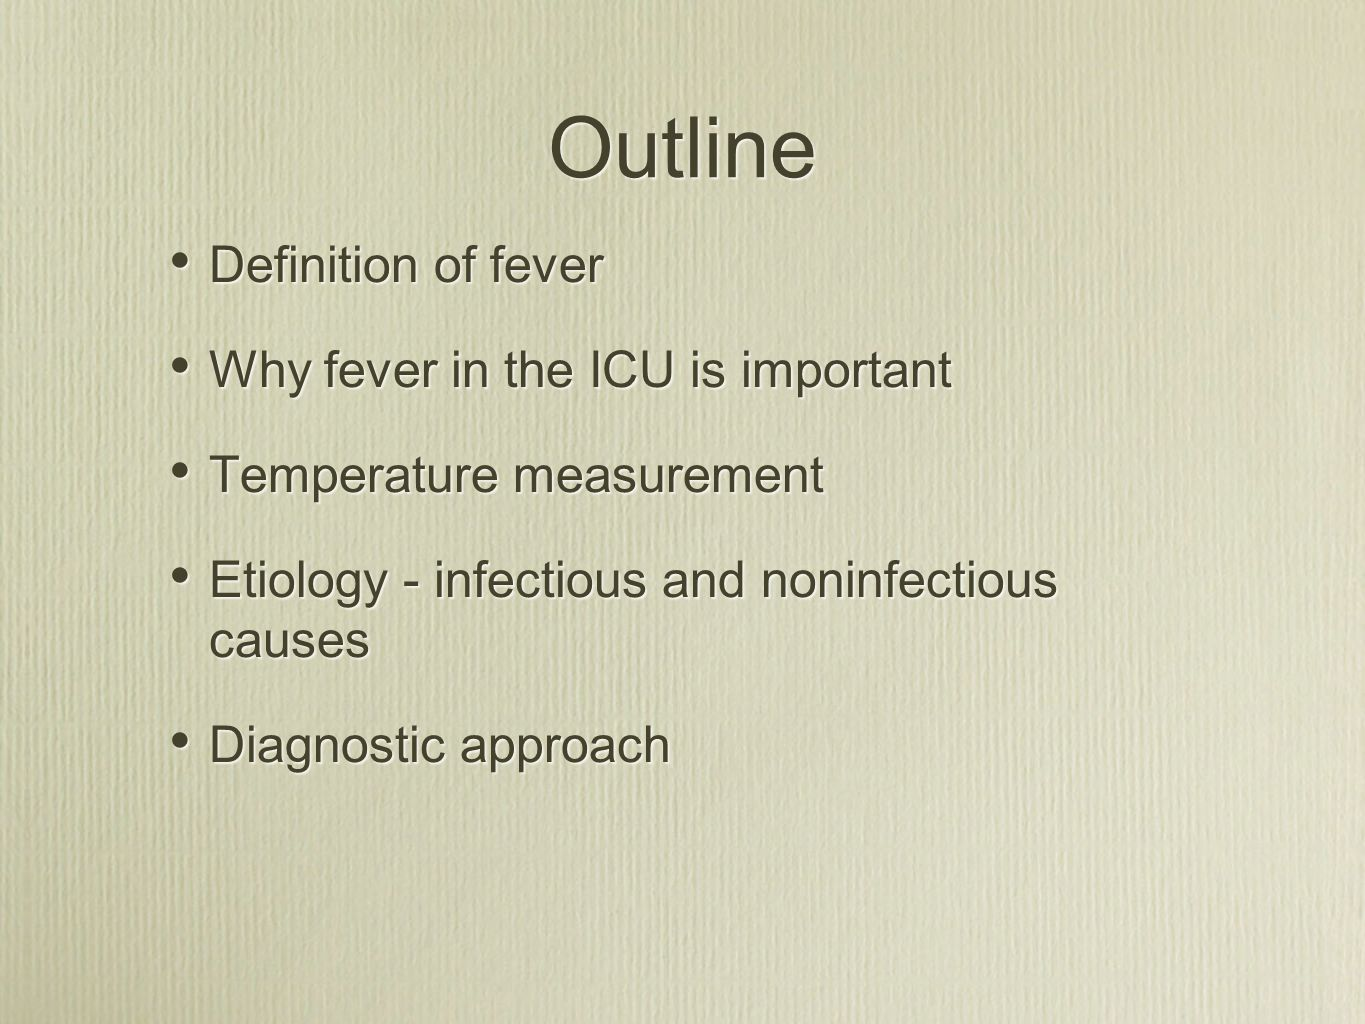 Outline Definition of fever Why fever in the ICU is important